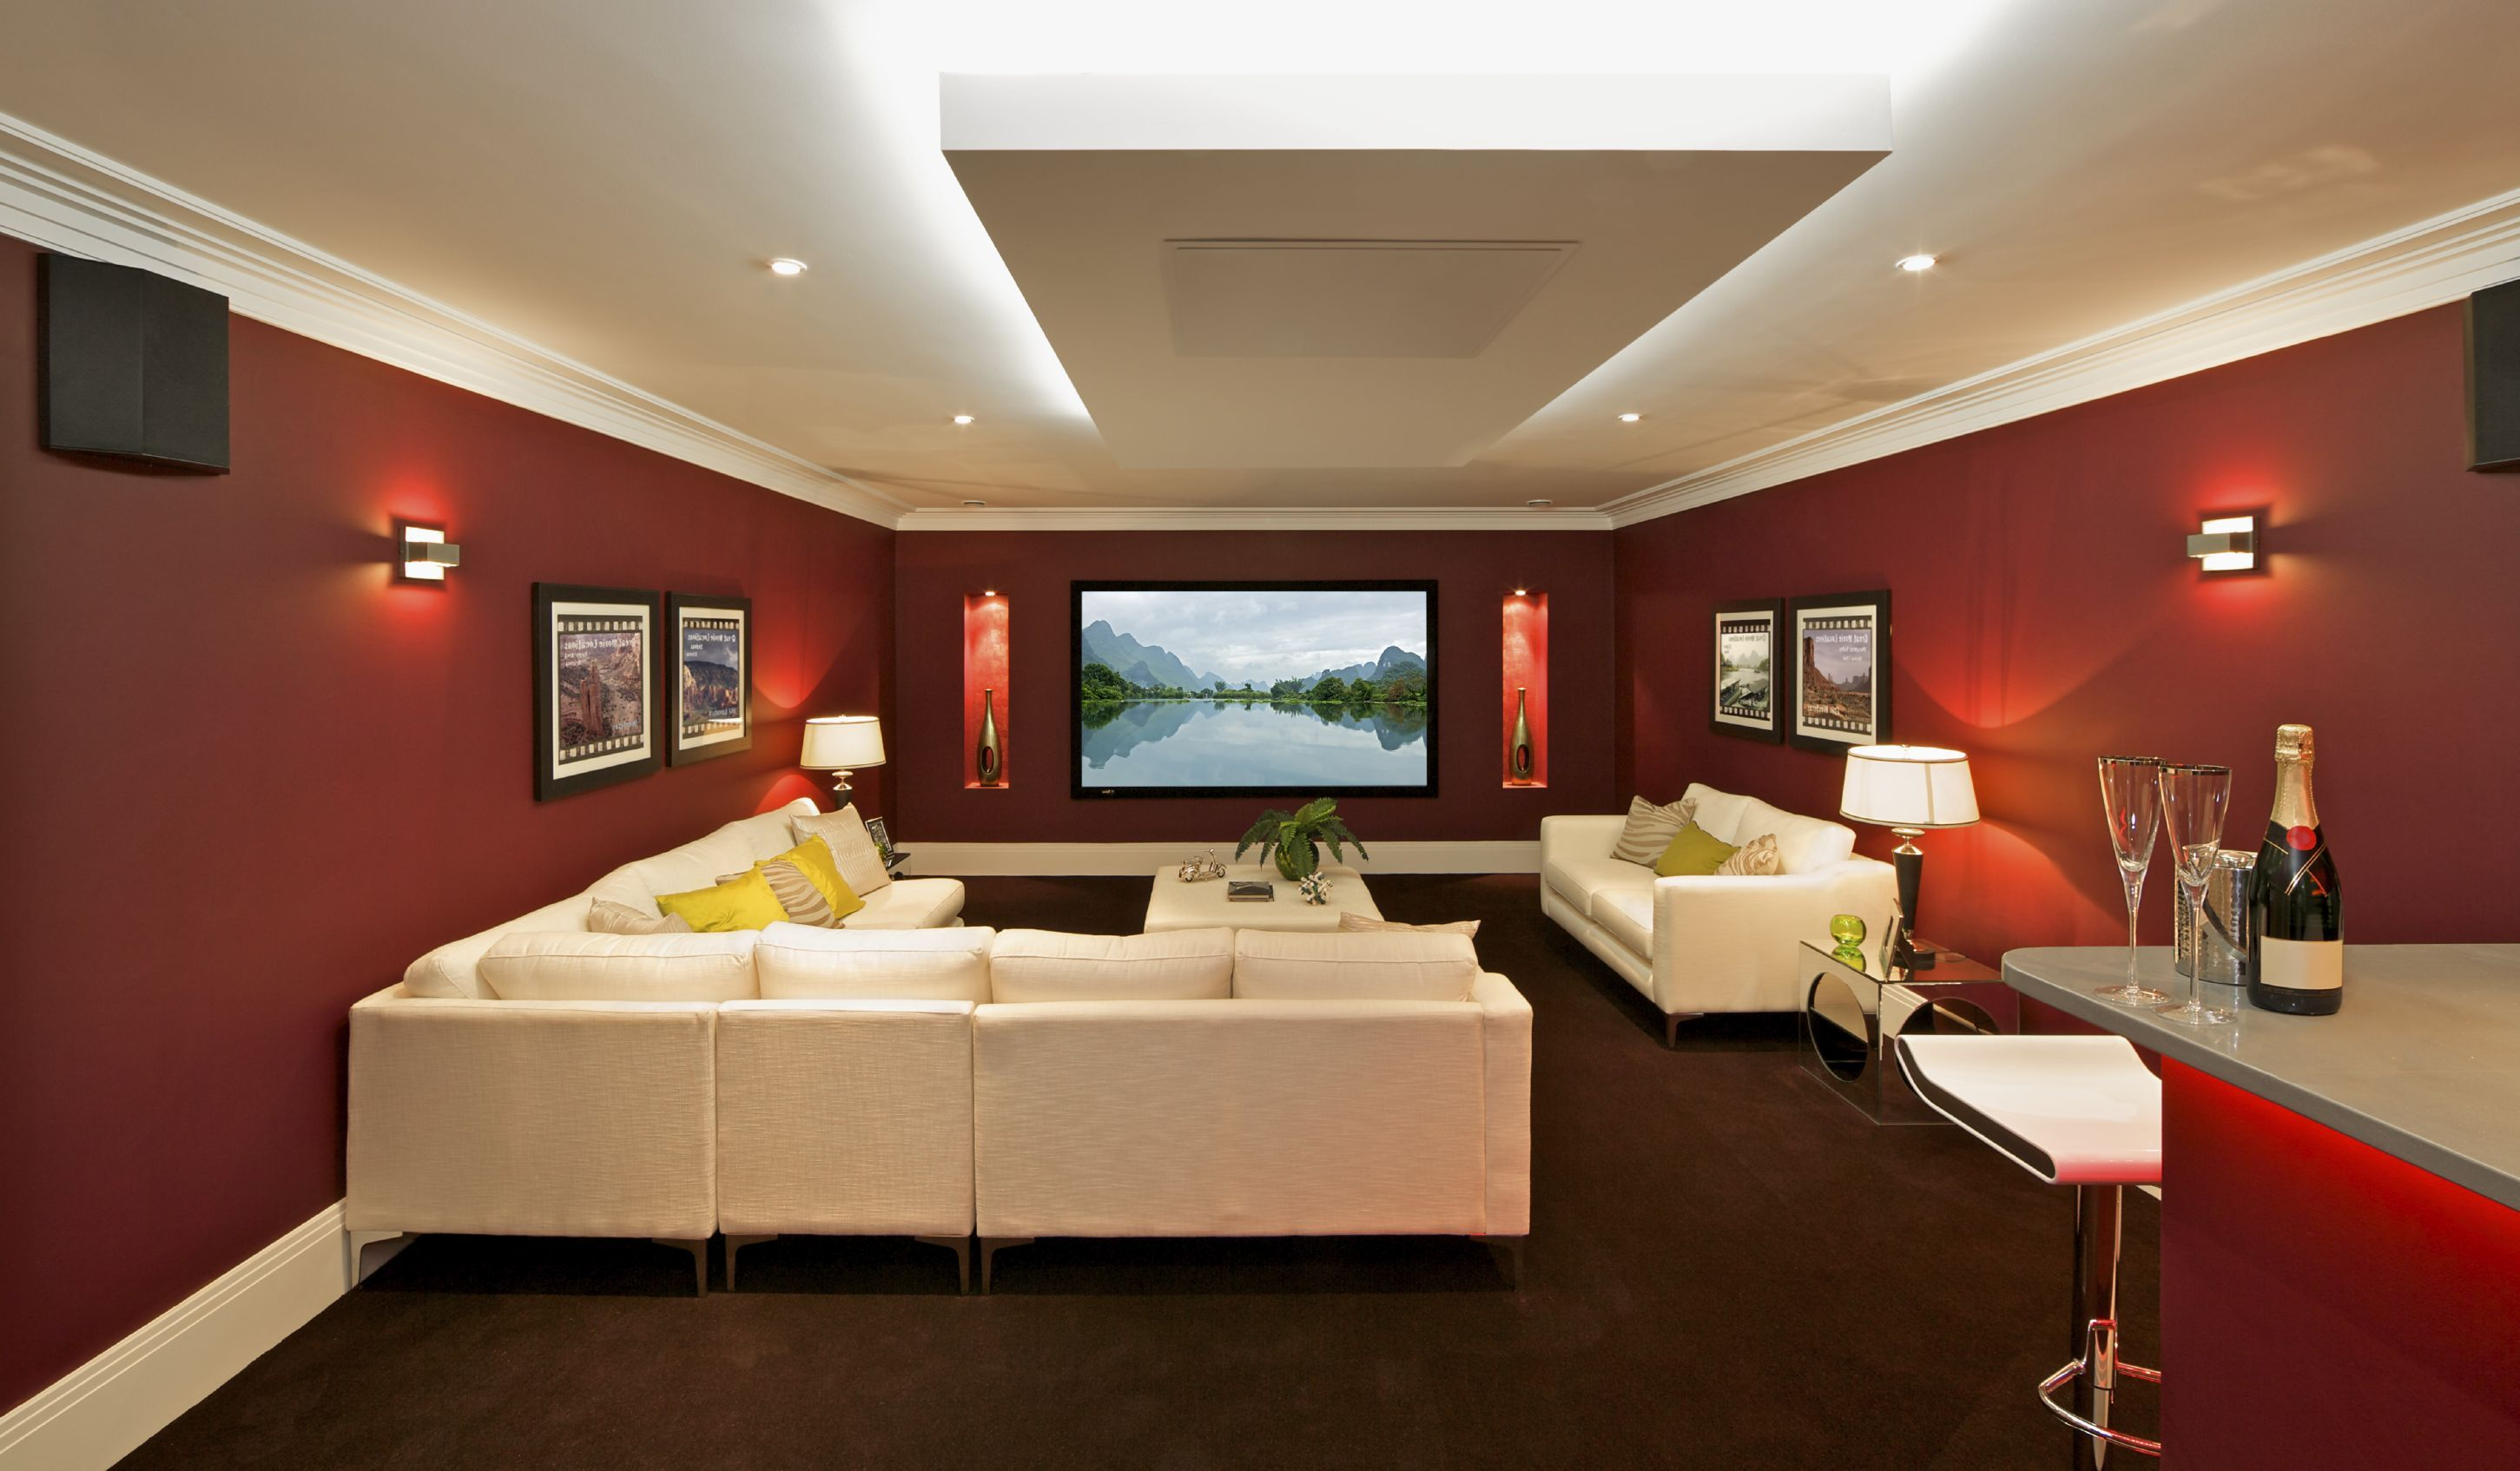 Home Theater Sectional Red Living Room With Sconces Decorations Amazing Red Living Room Designs Decorating Design